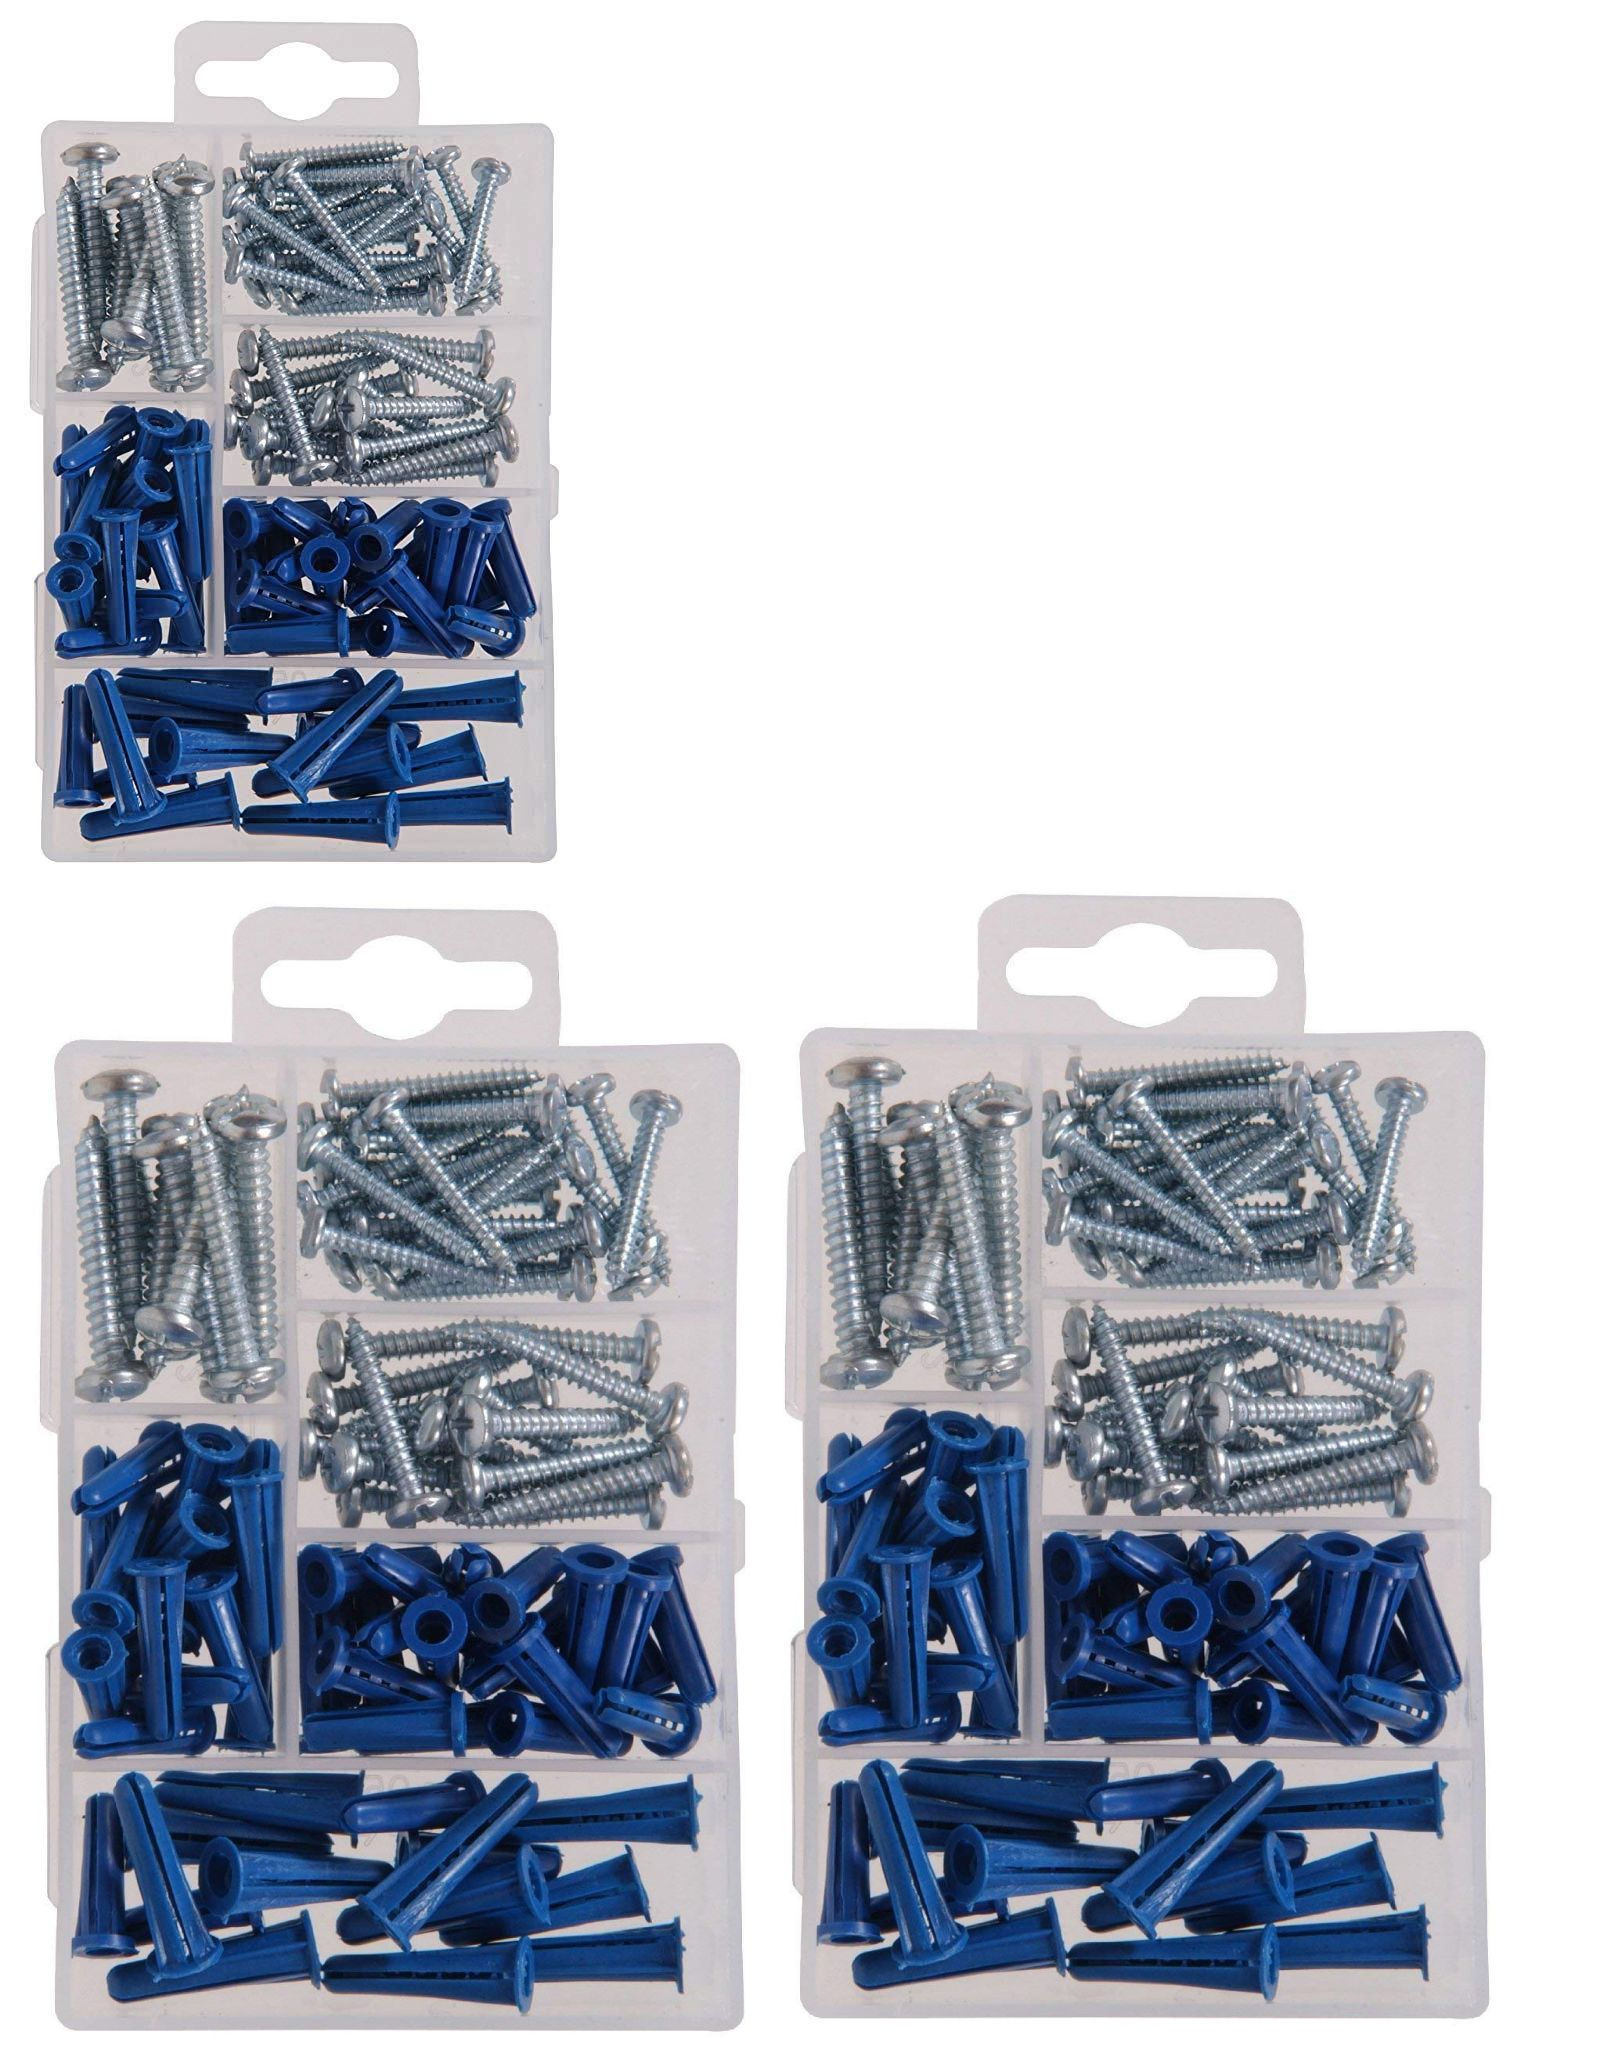 Details About Hillman Group 591516 2 Pack Small Anchors With Srcews Assortment 95 Piece Box Small Anchor Ebay Anchor